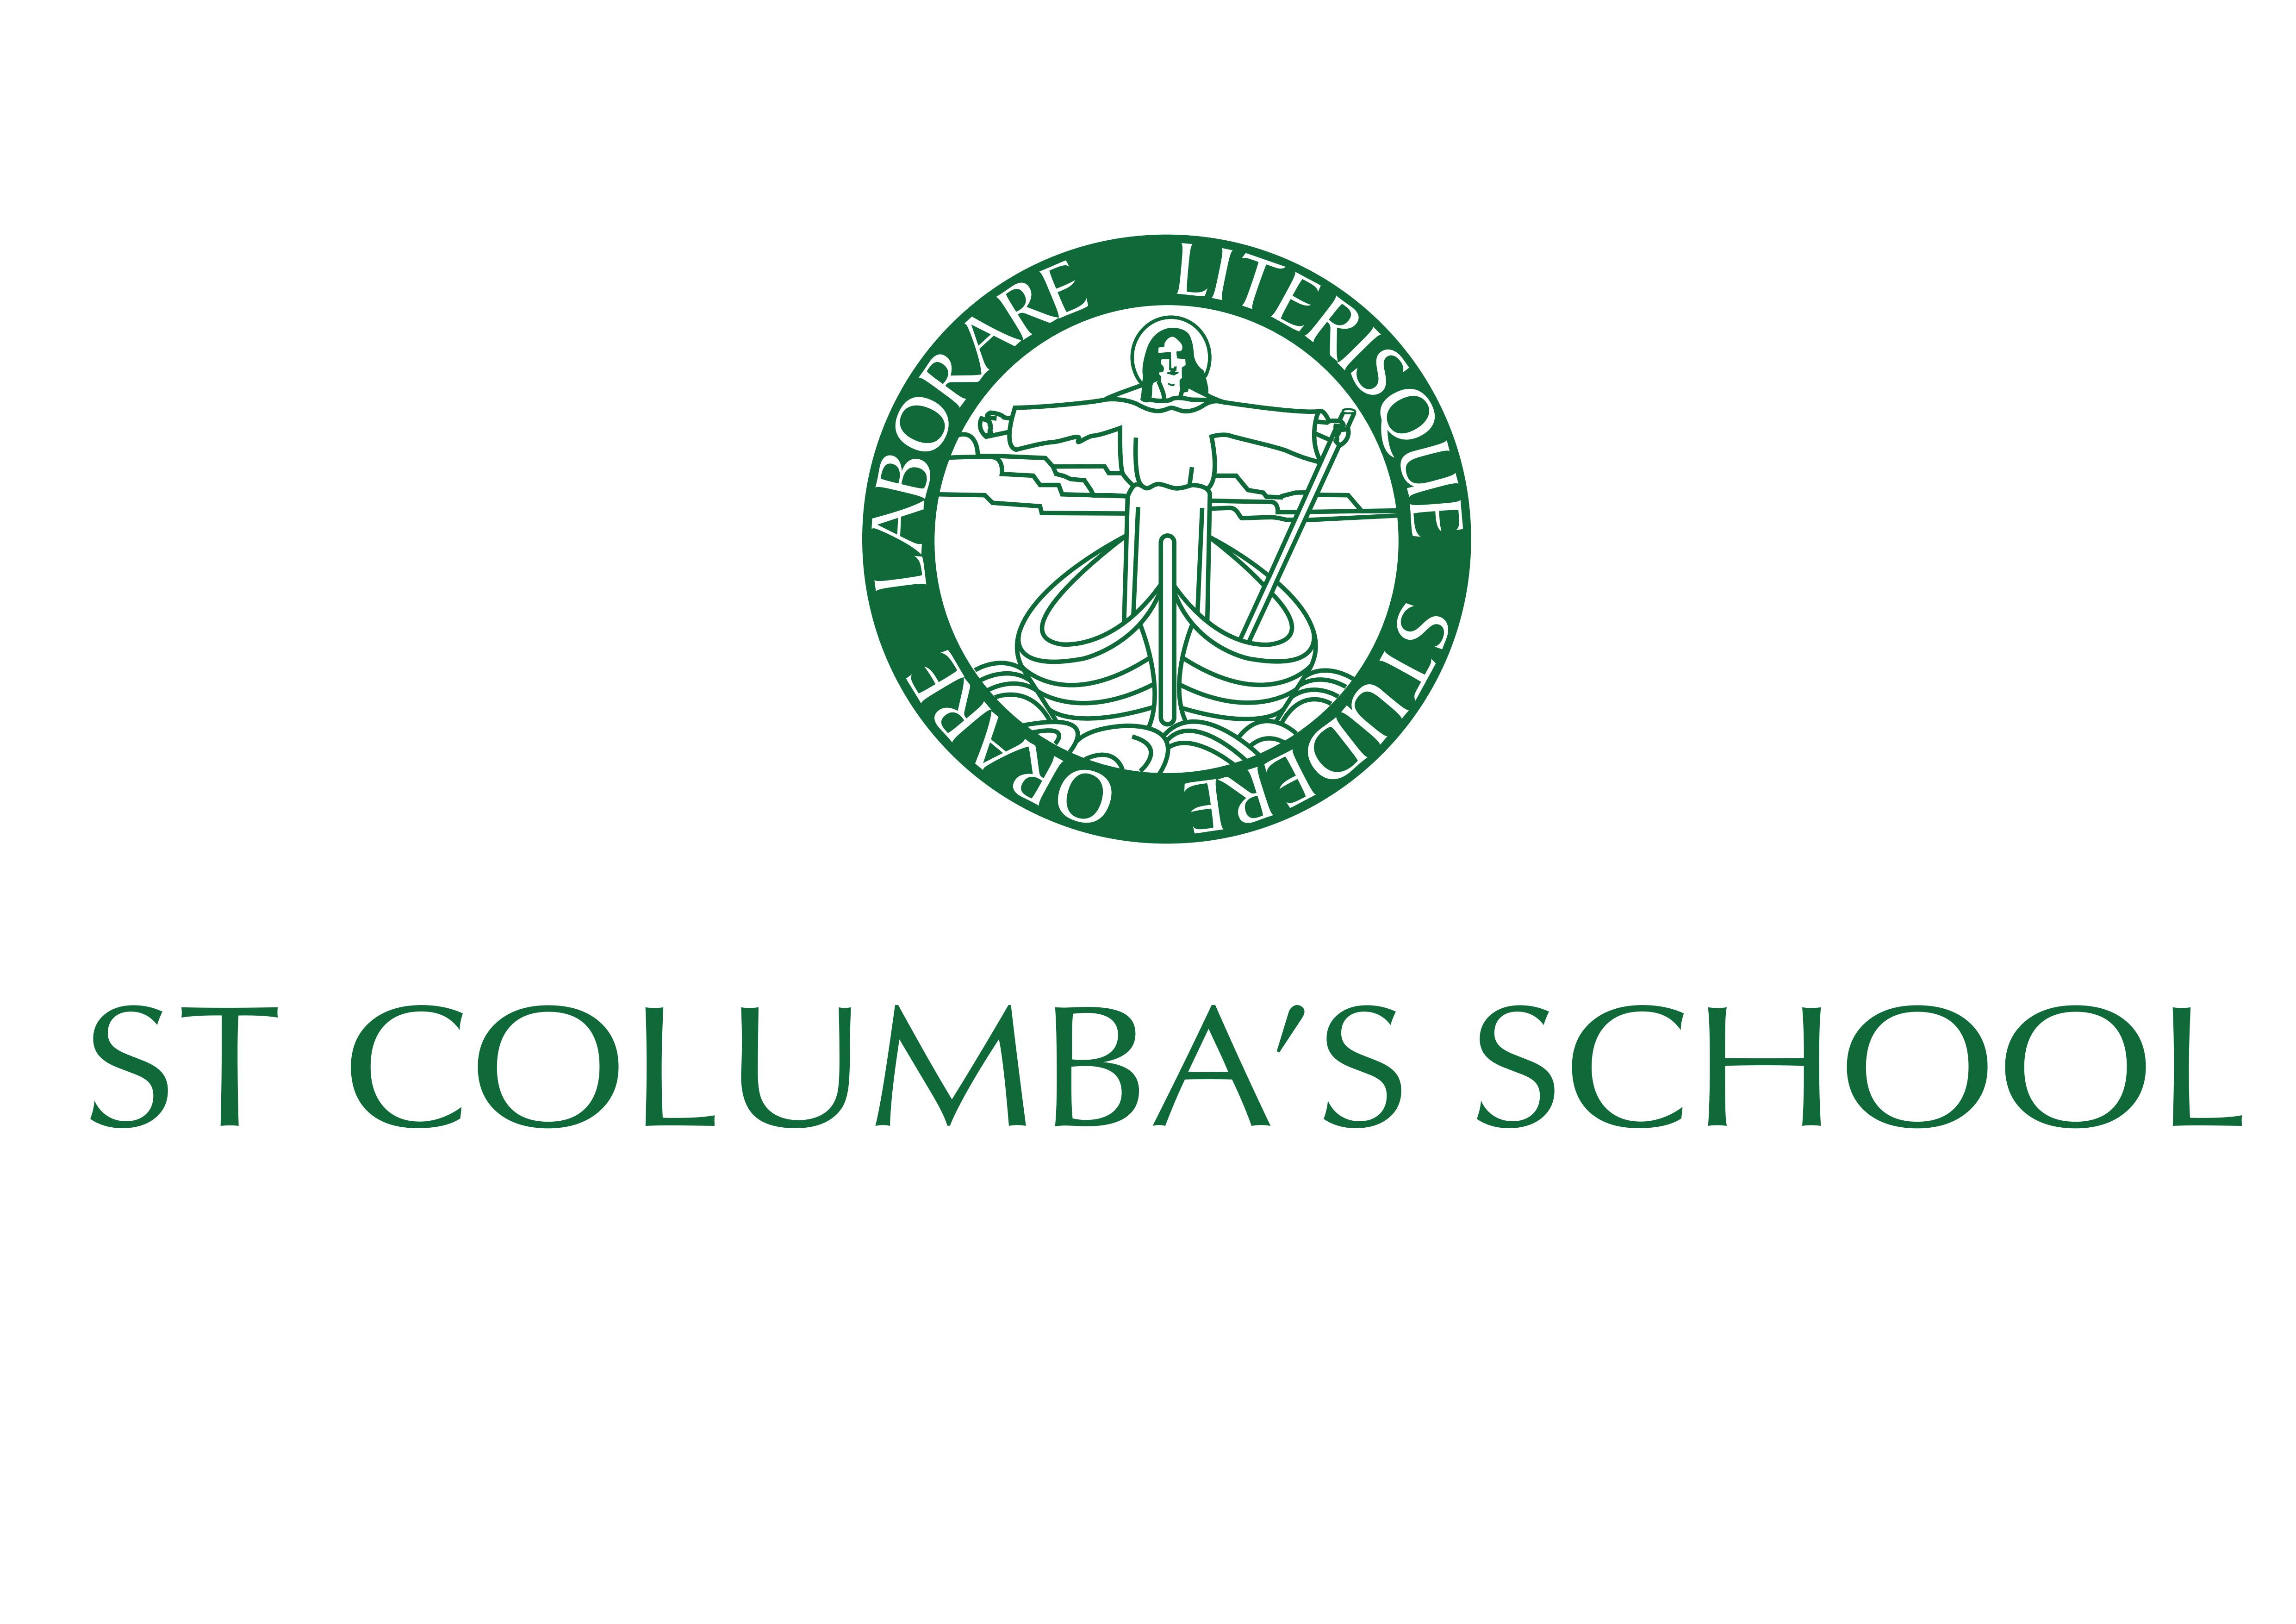 St Columbas centred logo green